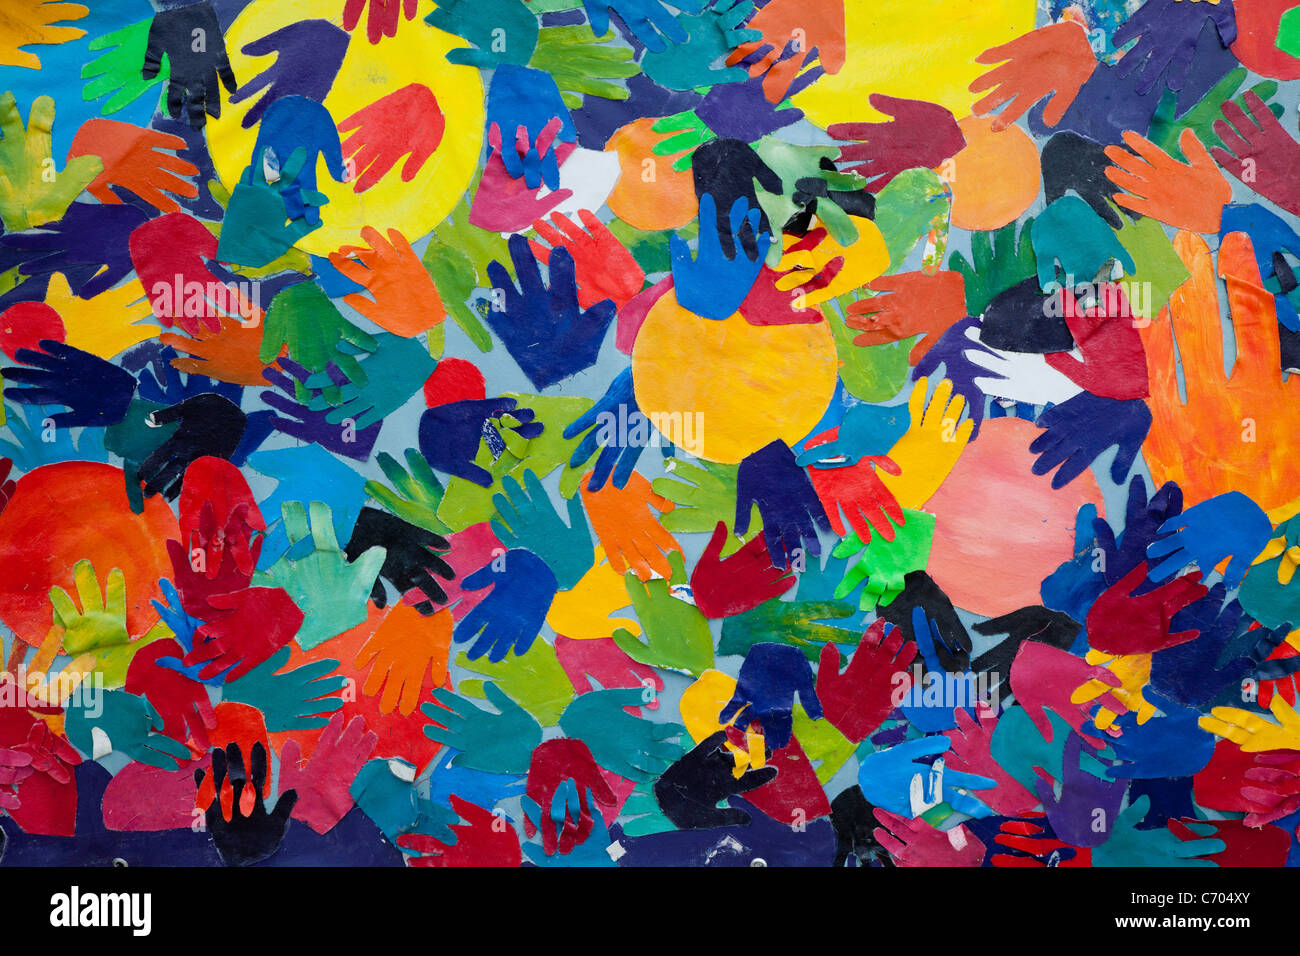 Detroit, Michigan - Artwork showing colorful hands displayed along the Detroit River Walk. - Stock Image